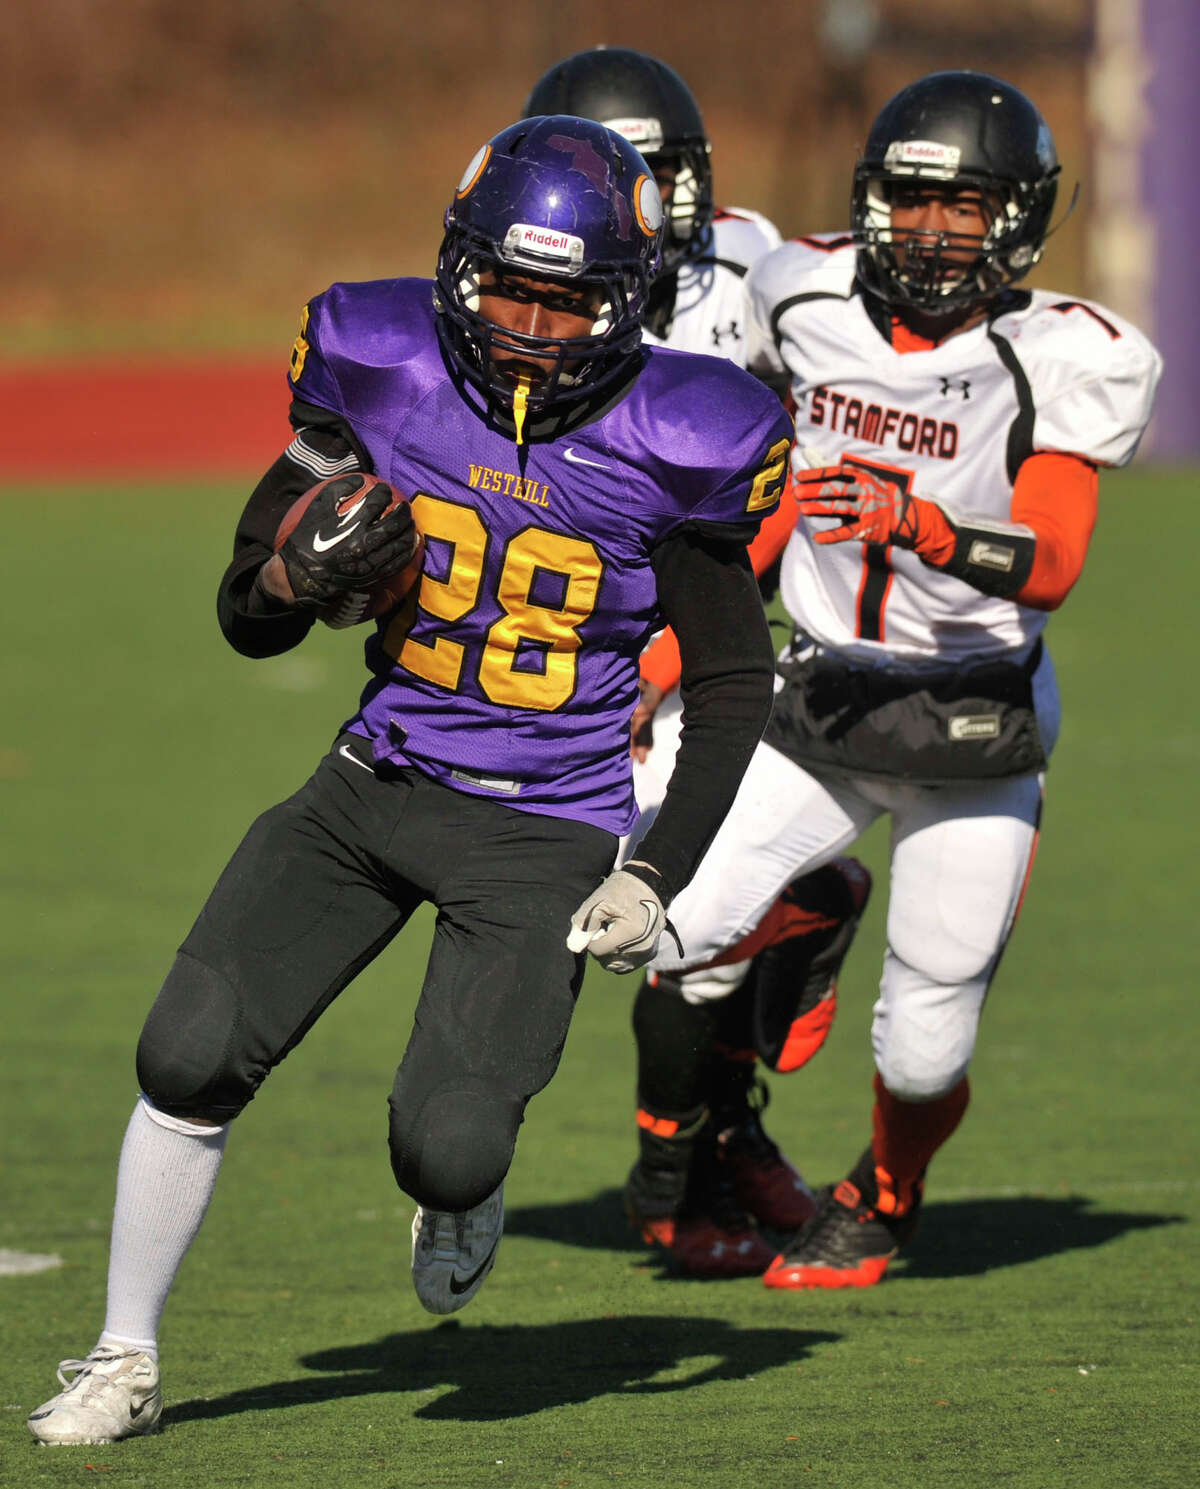 Weshill's Josh Exantus runs with the ball during their game against Stamford at Westhill High School in Stamford, Conn., on Thanksgiving Day, Thursday, Nov. 28, 2013. Westhill beat Stamford, 40-0 to win the City Championship.